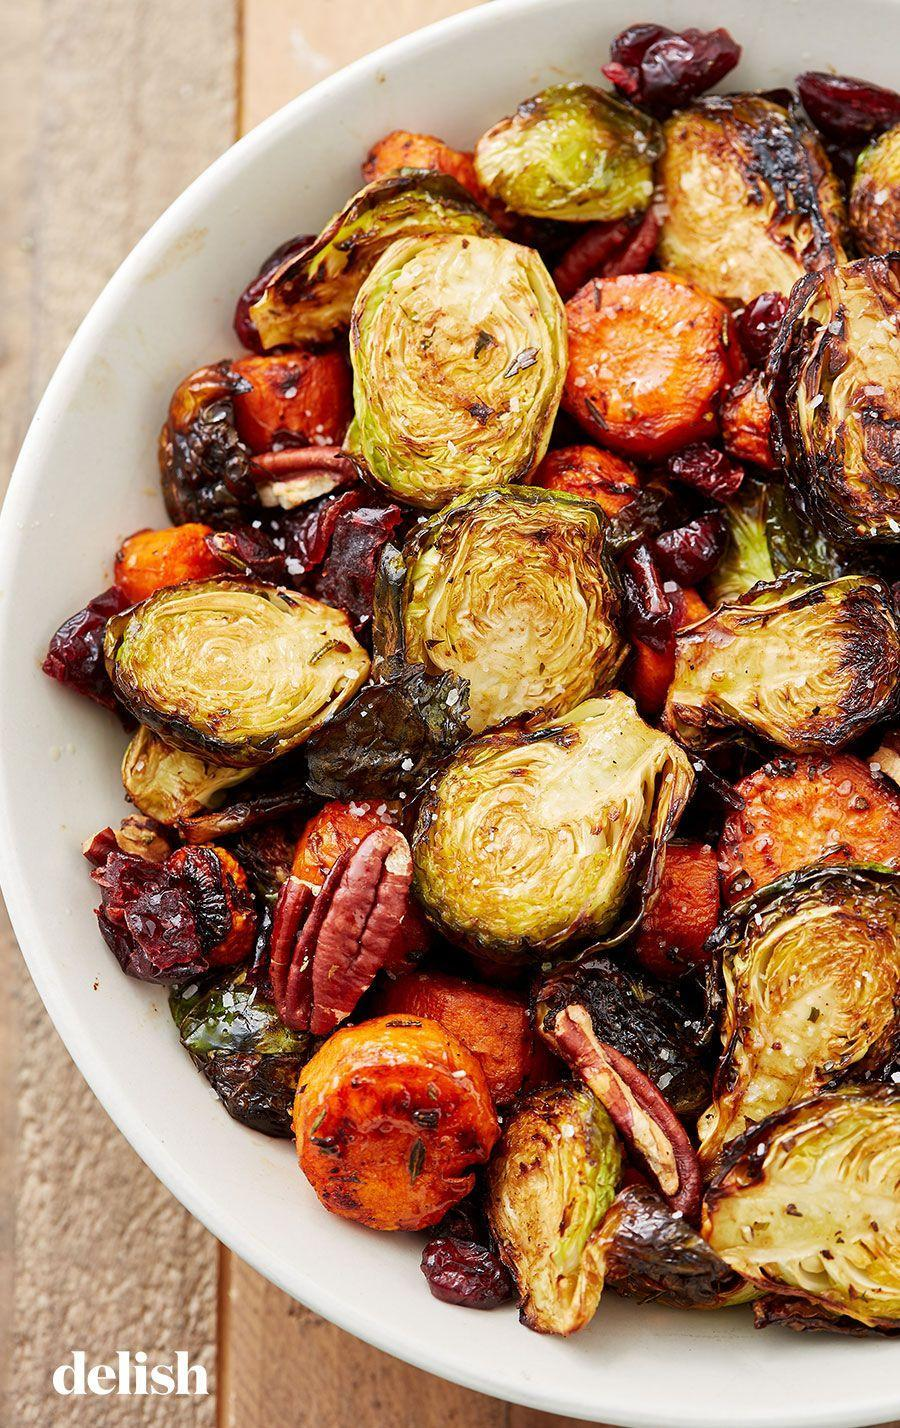 """<p>Holidays mean no basic veggies allowed.</p><p>Get the recipe from <a href=""""https://delish.com/cooking/recipe-ideas/recipes/a50228/holiday-roasted-vegetables-recipe/"""" rel=""""nofollow noopener"""" target=""""_blank"""" data-ylk=""""slk:Delish"""" class=""""link rapid-noclick-resp"""">Delish</a>. </p>"""